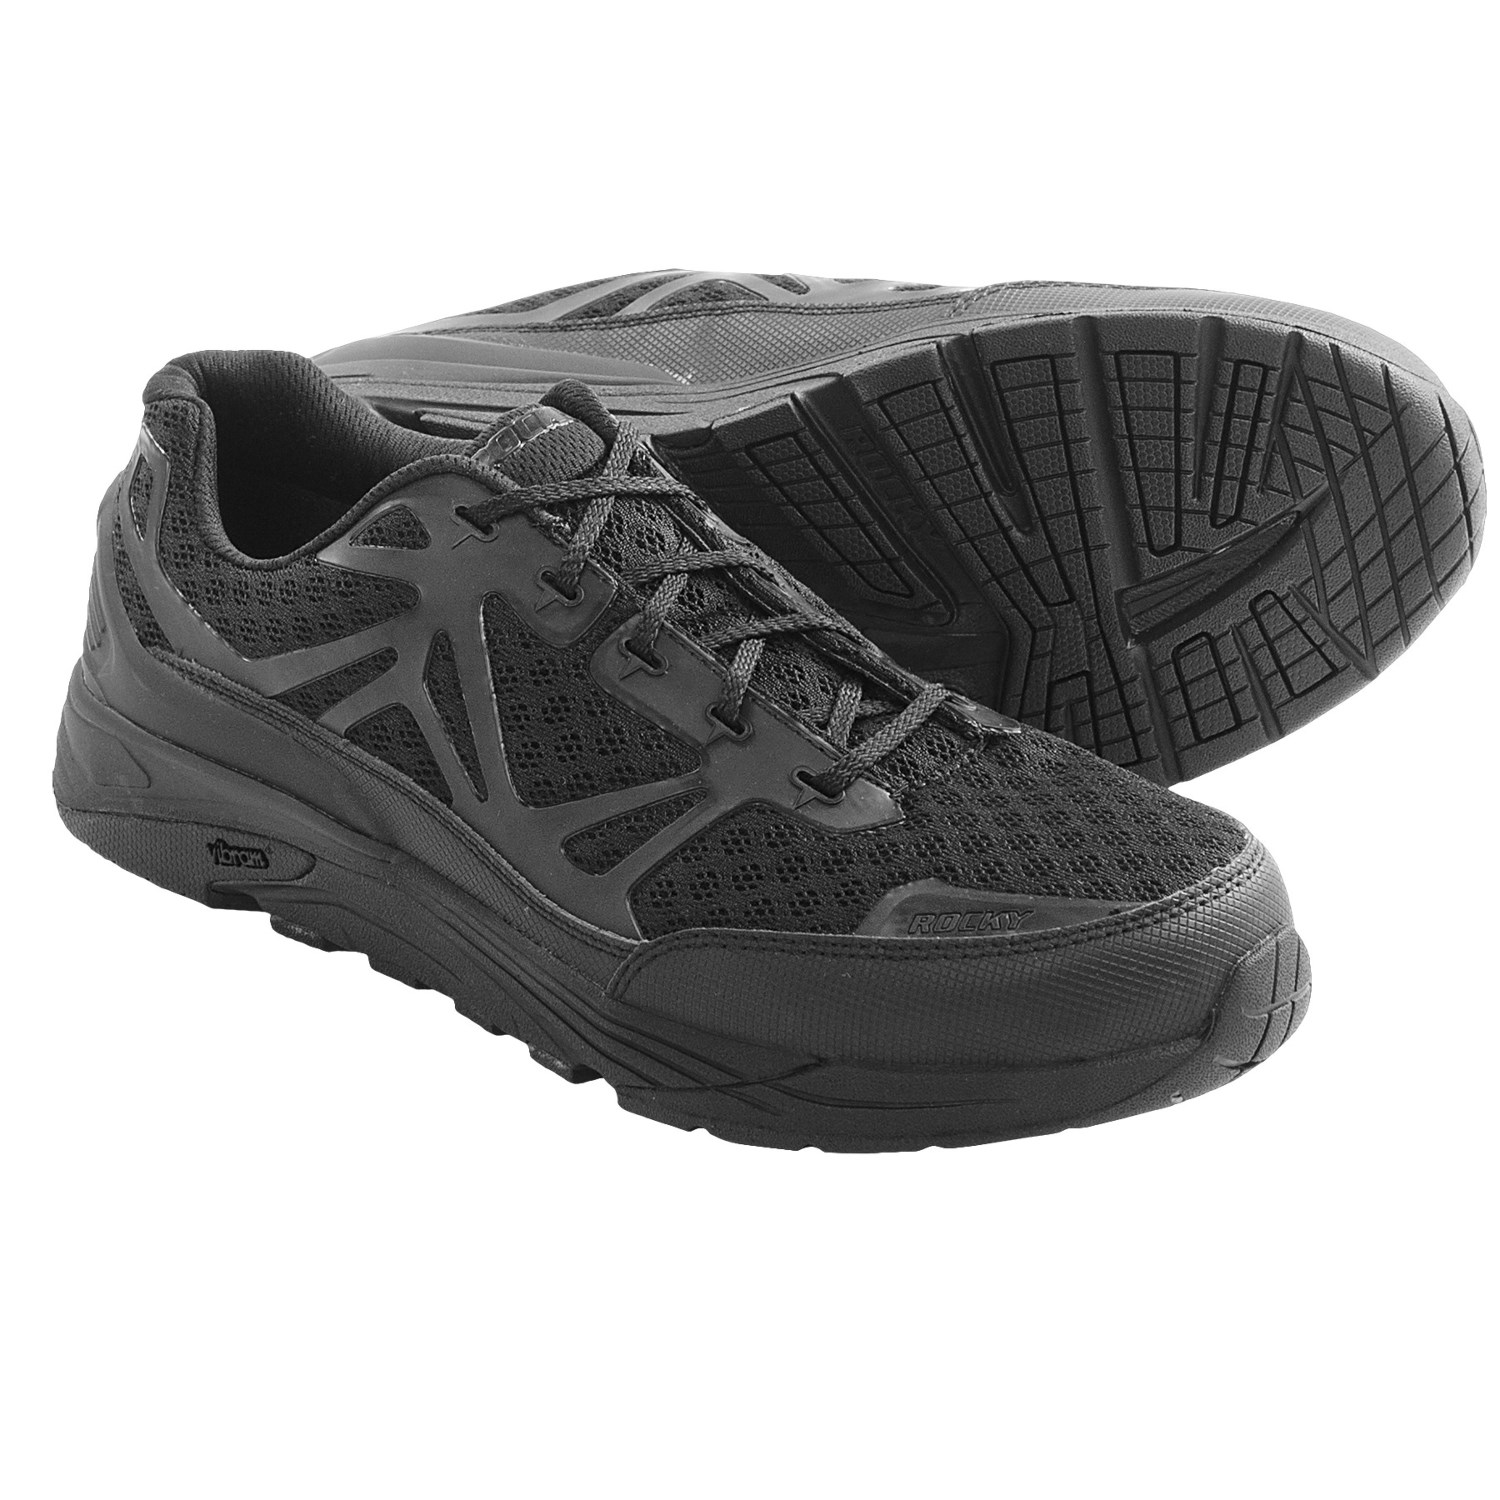 Rocky Industrial Athletix Locut Work Shoes (For Men) in Black